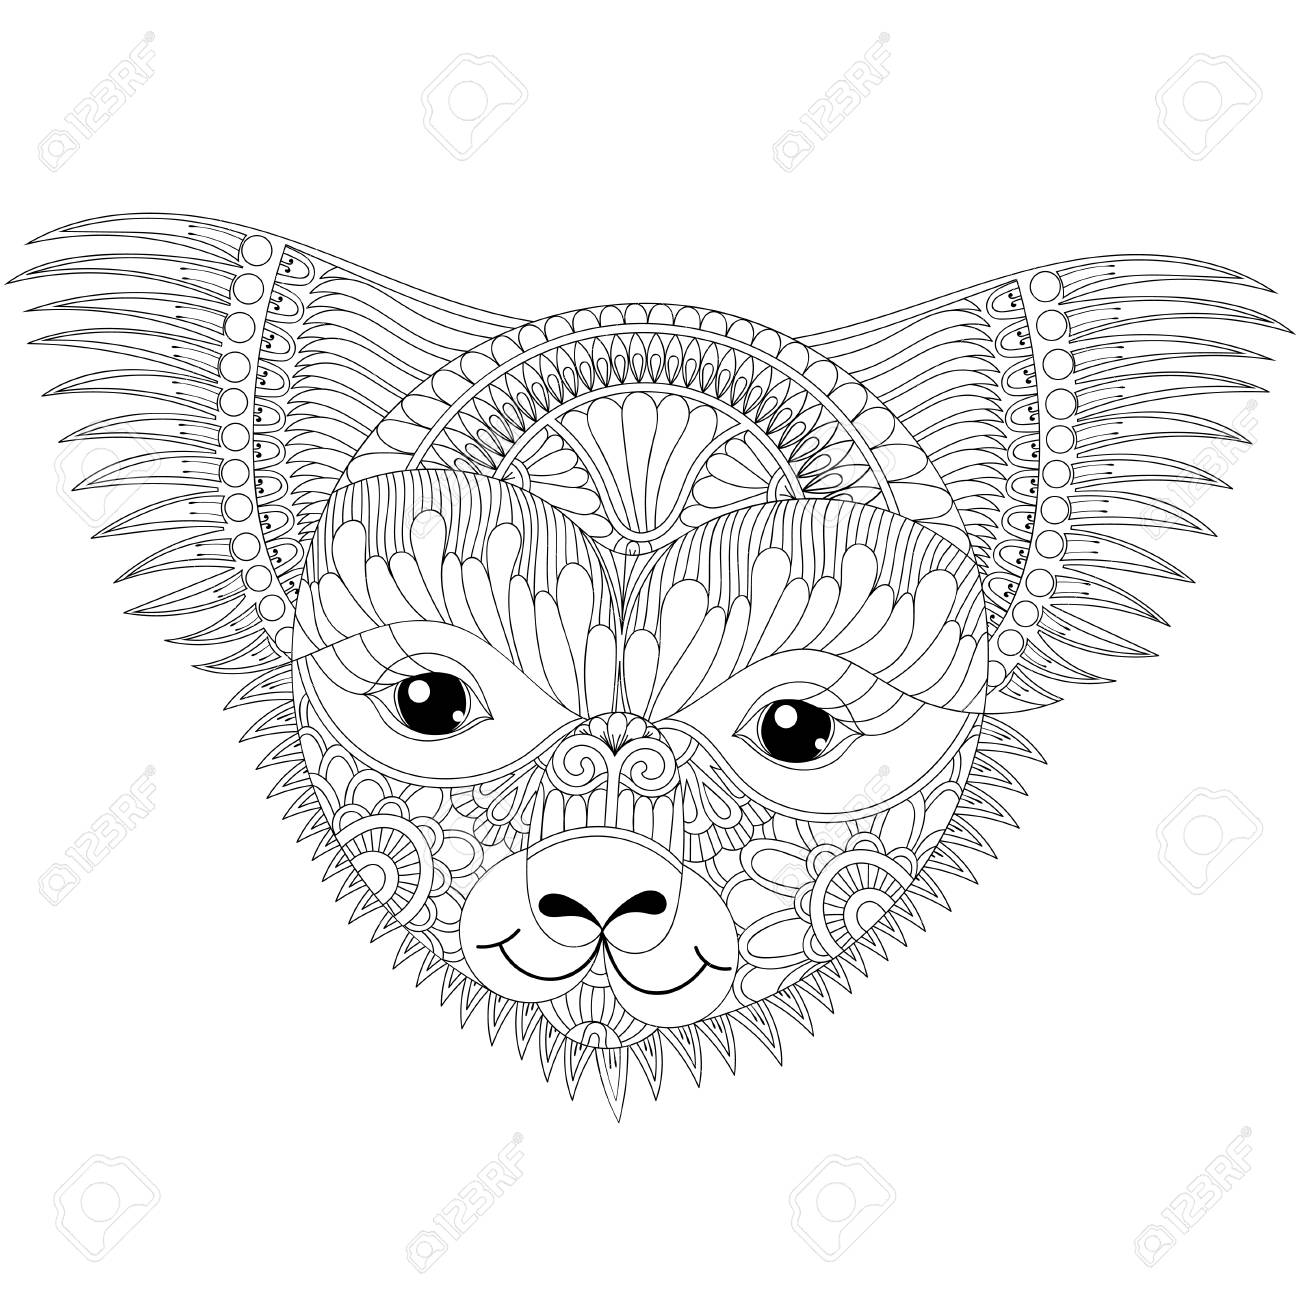 7ca1ab329c92b Hand drawn patterned illustration. Vector zentangle happy friendly koala  face for adult anti stress coloring pages, book, Australian